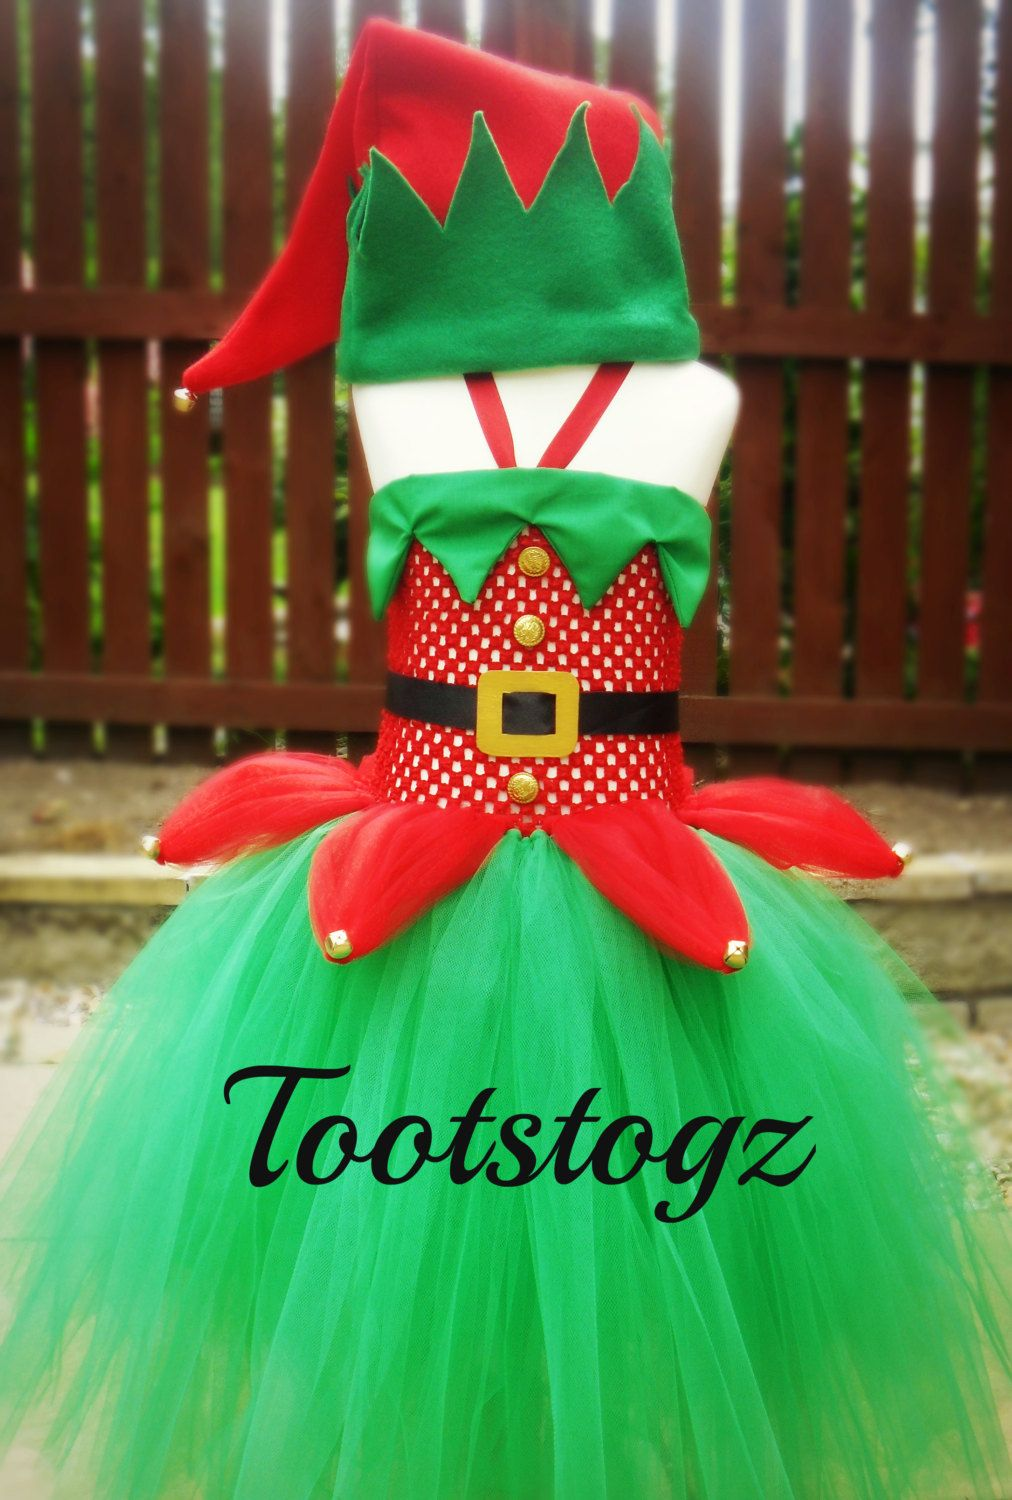 Childrens Christmas Elf Tutu dress costume red & by Tootstogz, £36.42